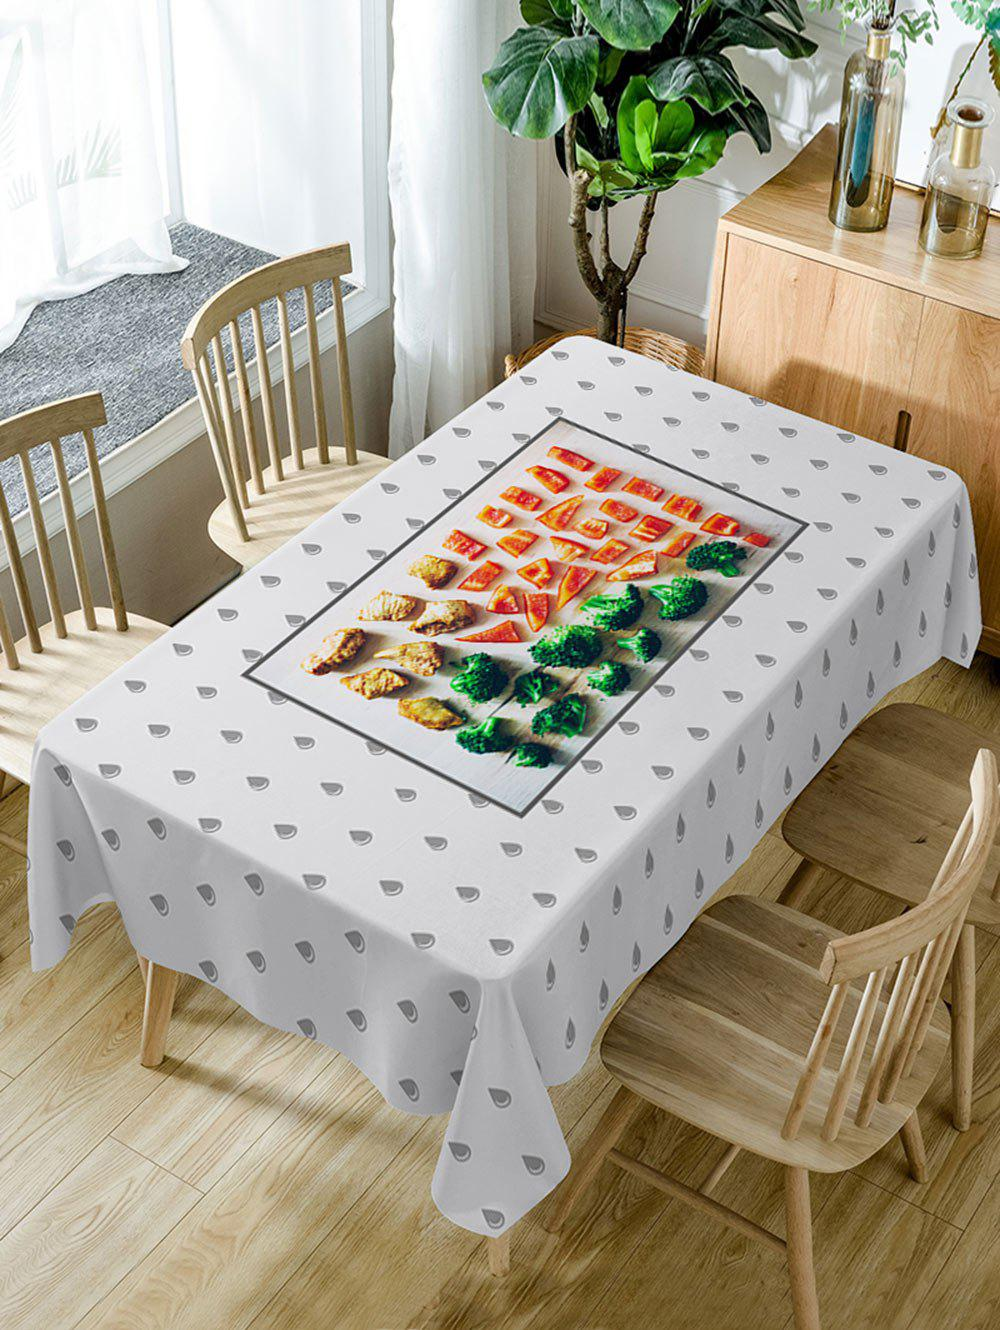 Foods and Water Drop Pattern Waterproof Table Cloth - COLORMIX W60 INCH * L84 INCH